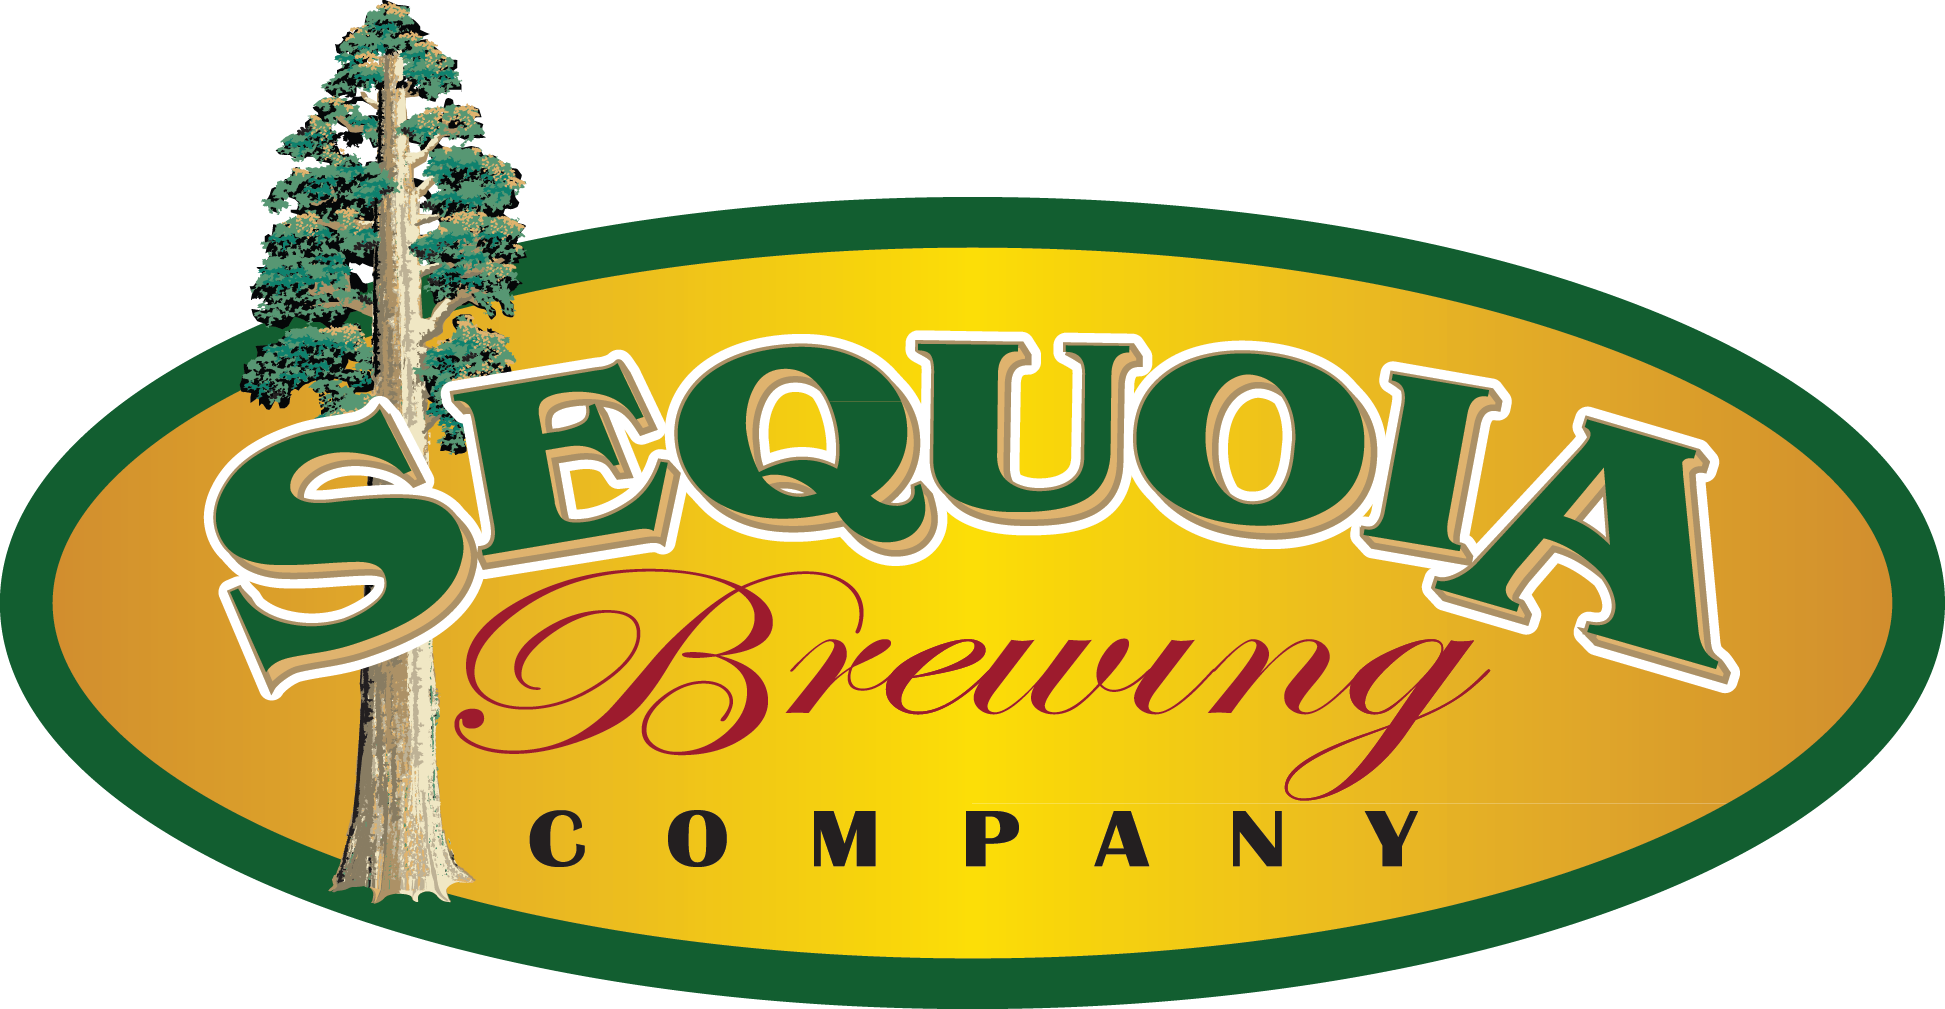 Sequoia Brewing Logo